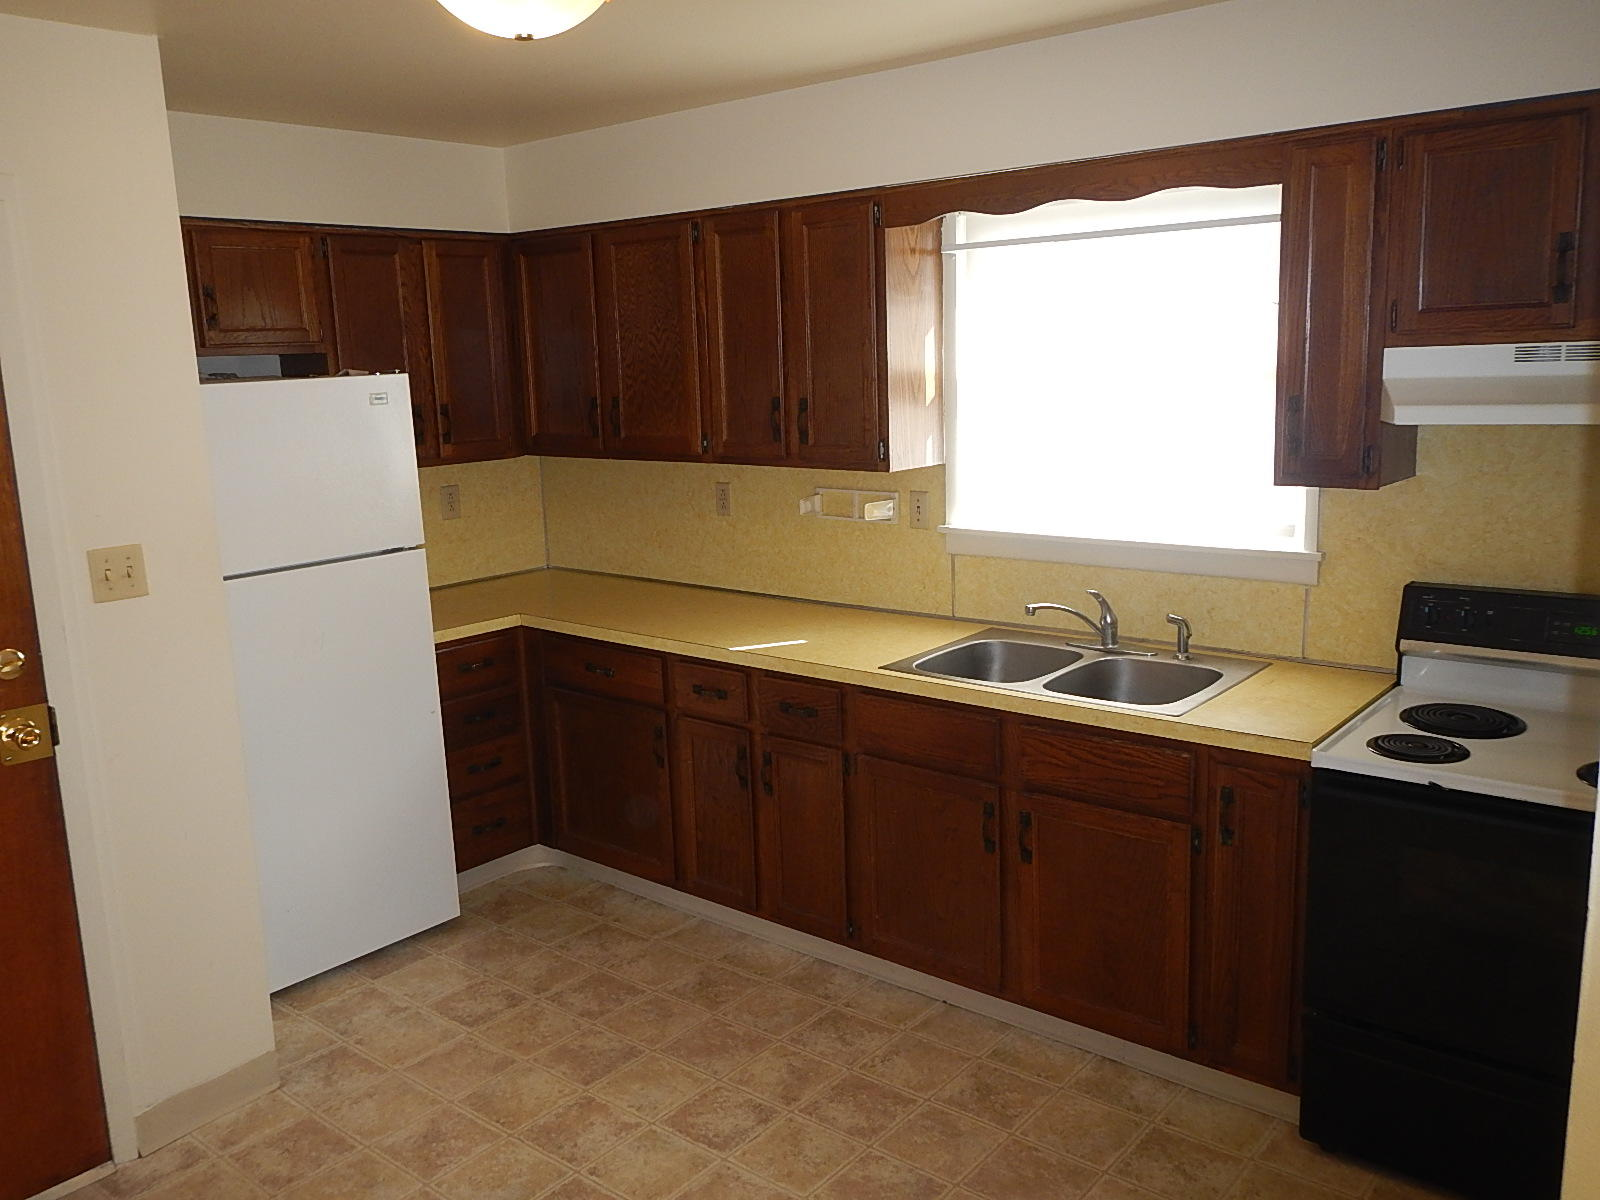 220 S 30th St #D, Harrisburg, PA 17103 For Rent | Trulia